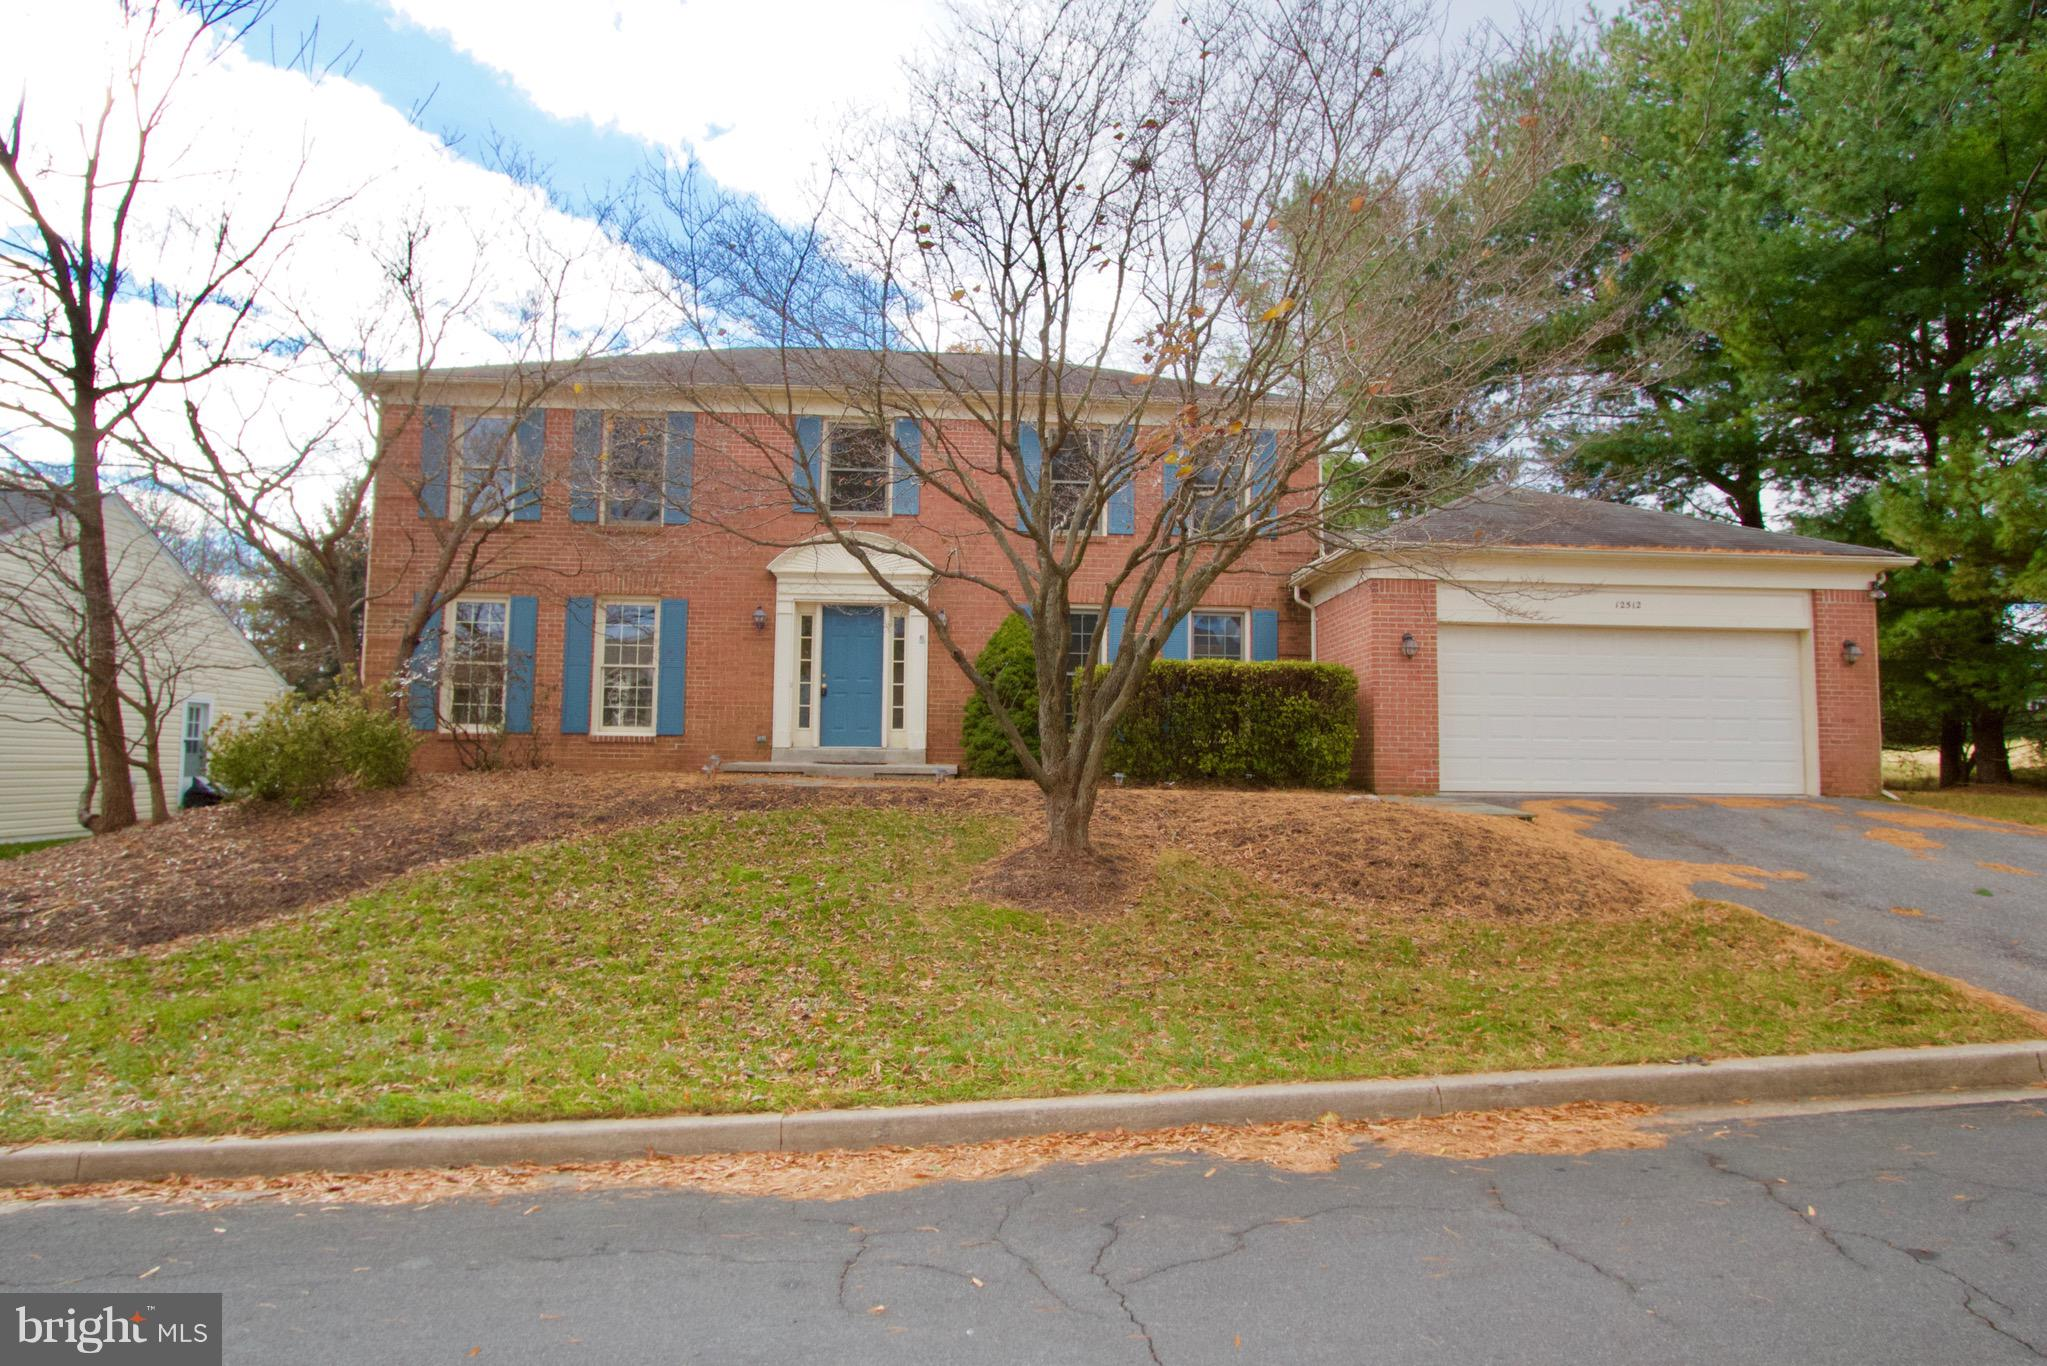 You've got to see this spacious colonial on a cul-de-sac with newly renovated kitchen, new kitchen appliances, refinished hardwood floors, main bath tile, additional recess lighting and more.  Backs to trees and a good amount of backyard living area.  The living room, dining room, family room and kitchen are fairly large plus you get an office/den.  A one year HMS home warranty is included with this purchase.